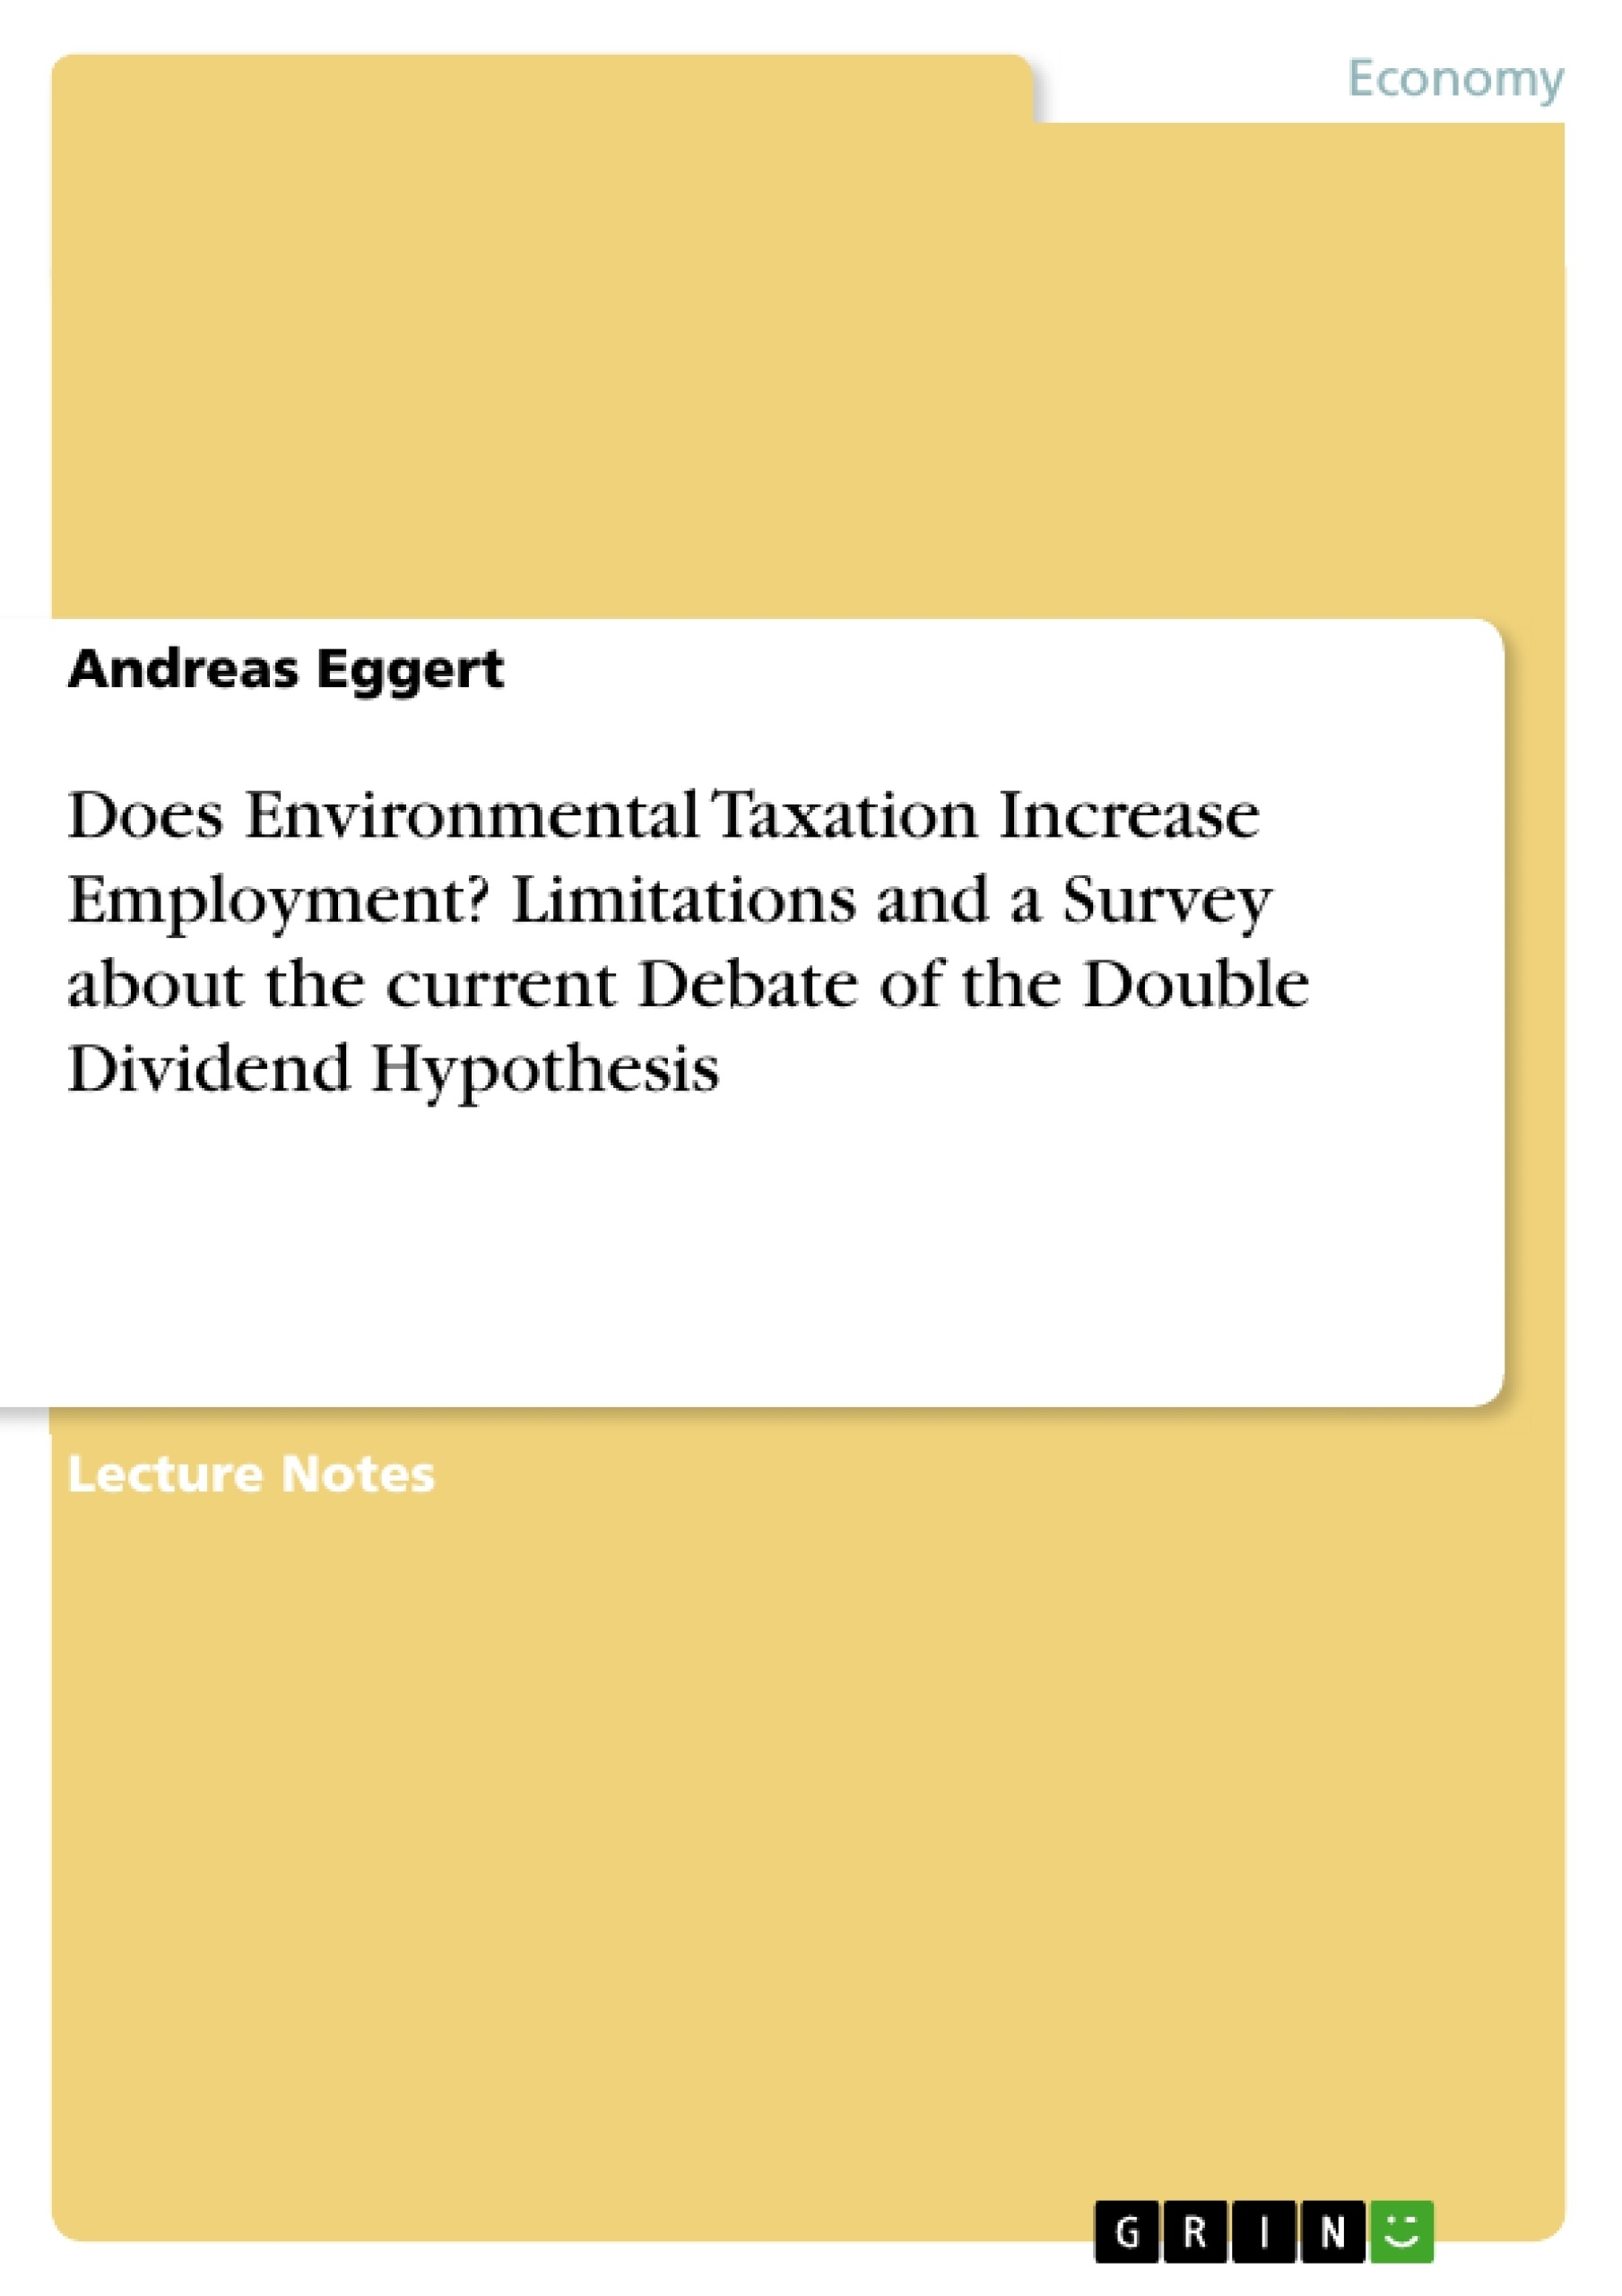 Title: Does Environmental Taxation Increase Employment? Limitations and a Survey about the current Debate of the Double Dividend Hypothesis